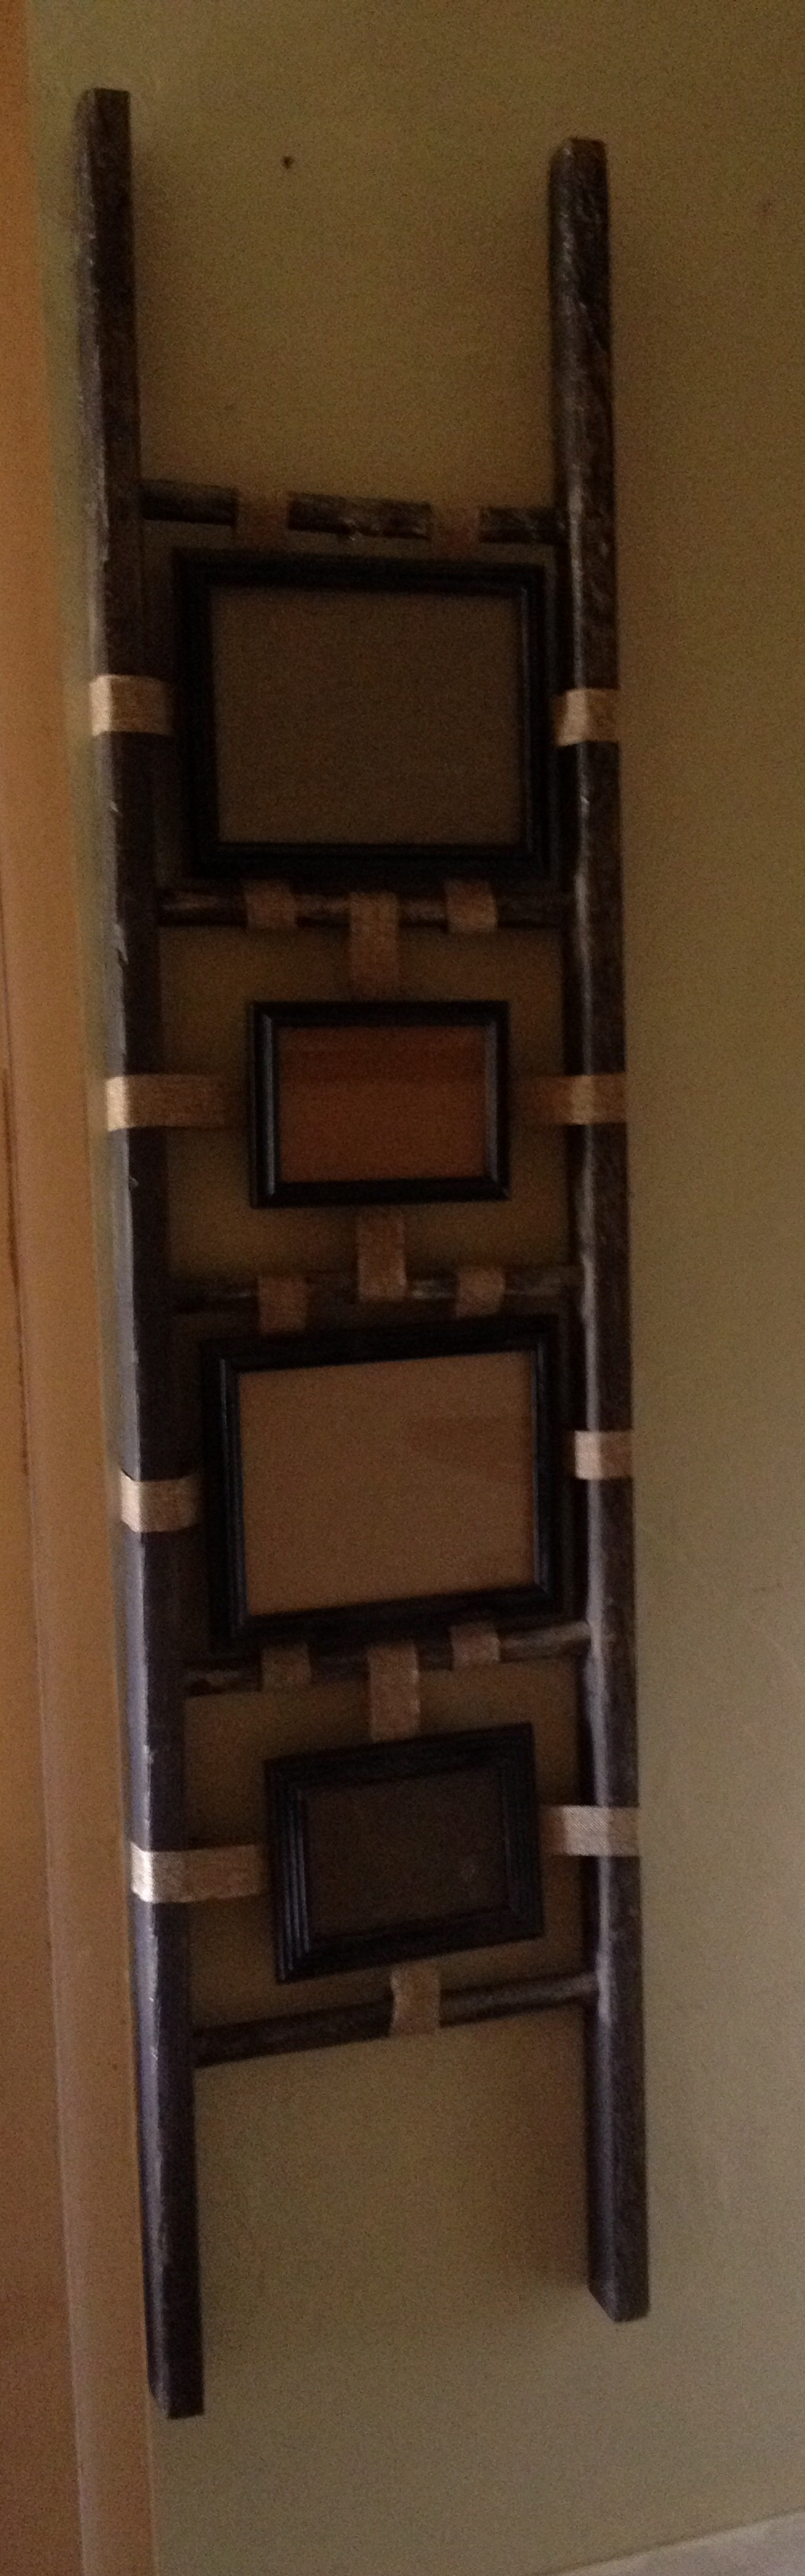 Wood Ladder Picture Frame Holder Gladding Farmhouse